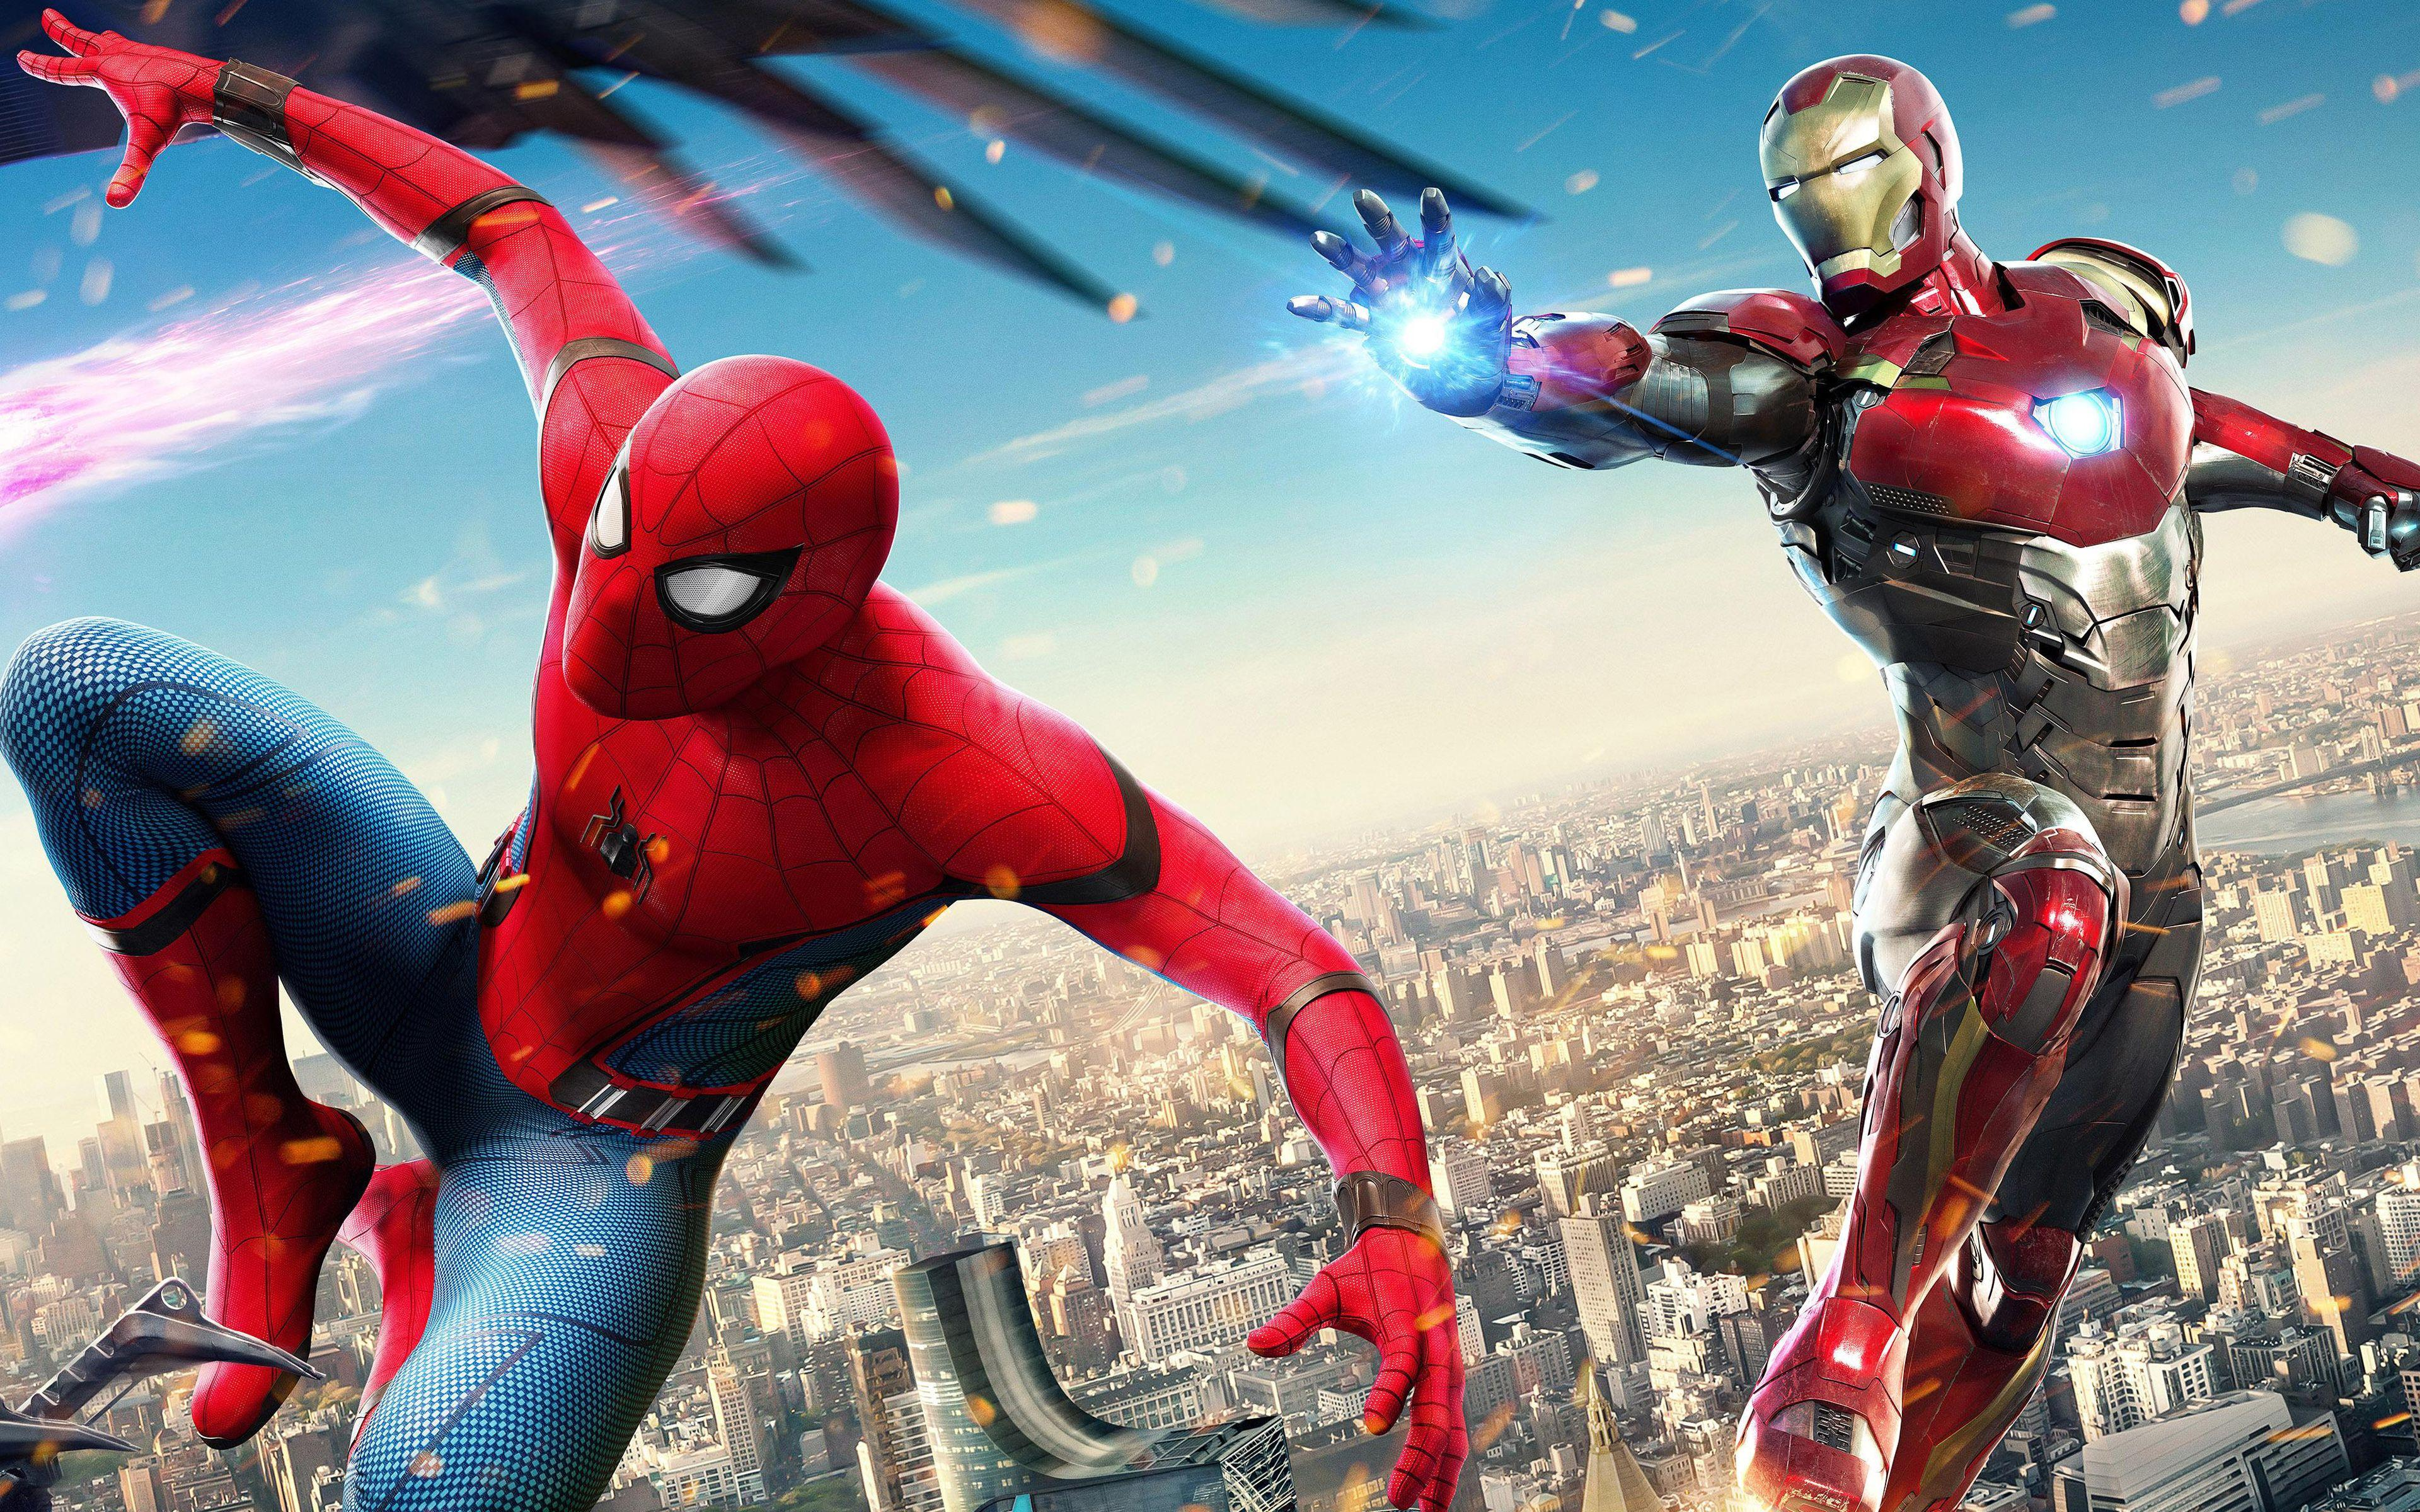 Iron Man Spiderman Homecoming 4K Wallpapers